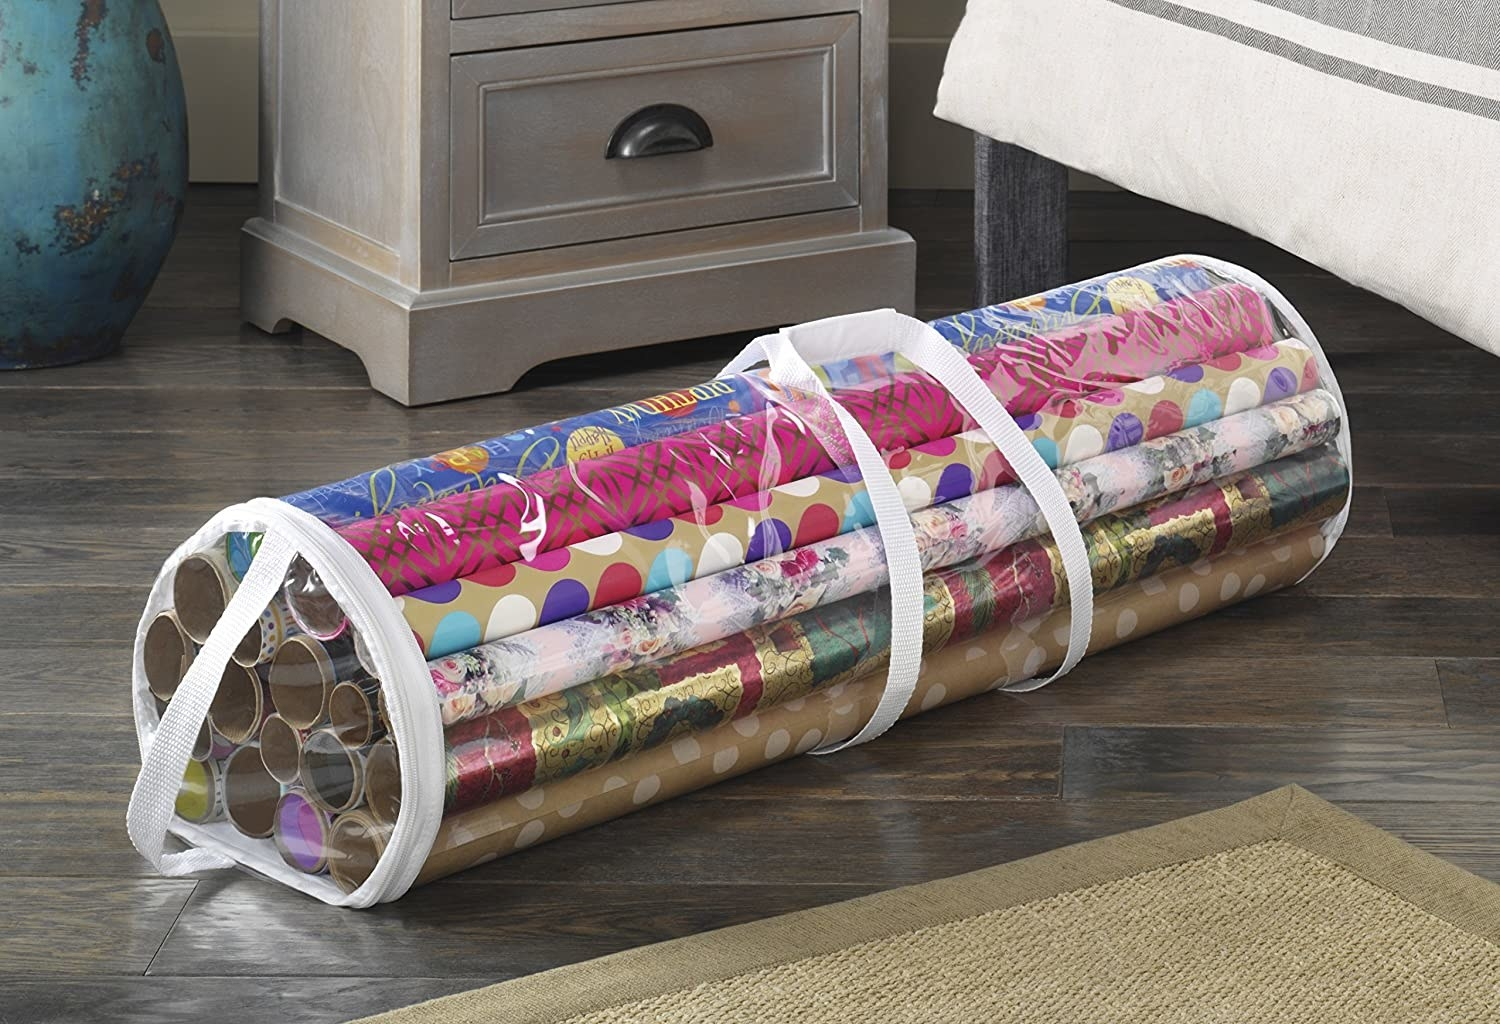 A gift wrap tote filled with rolls of wrapping paper